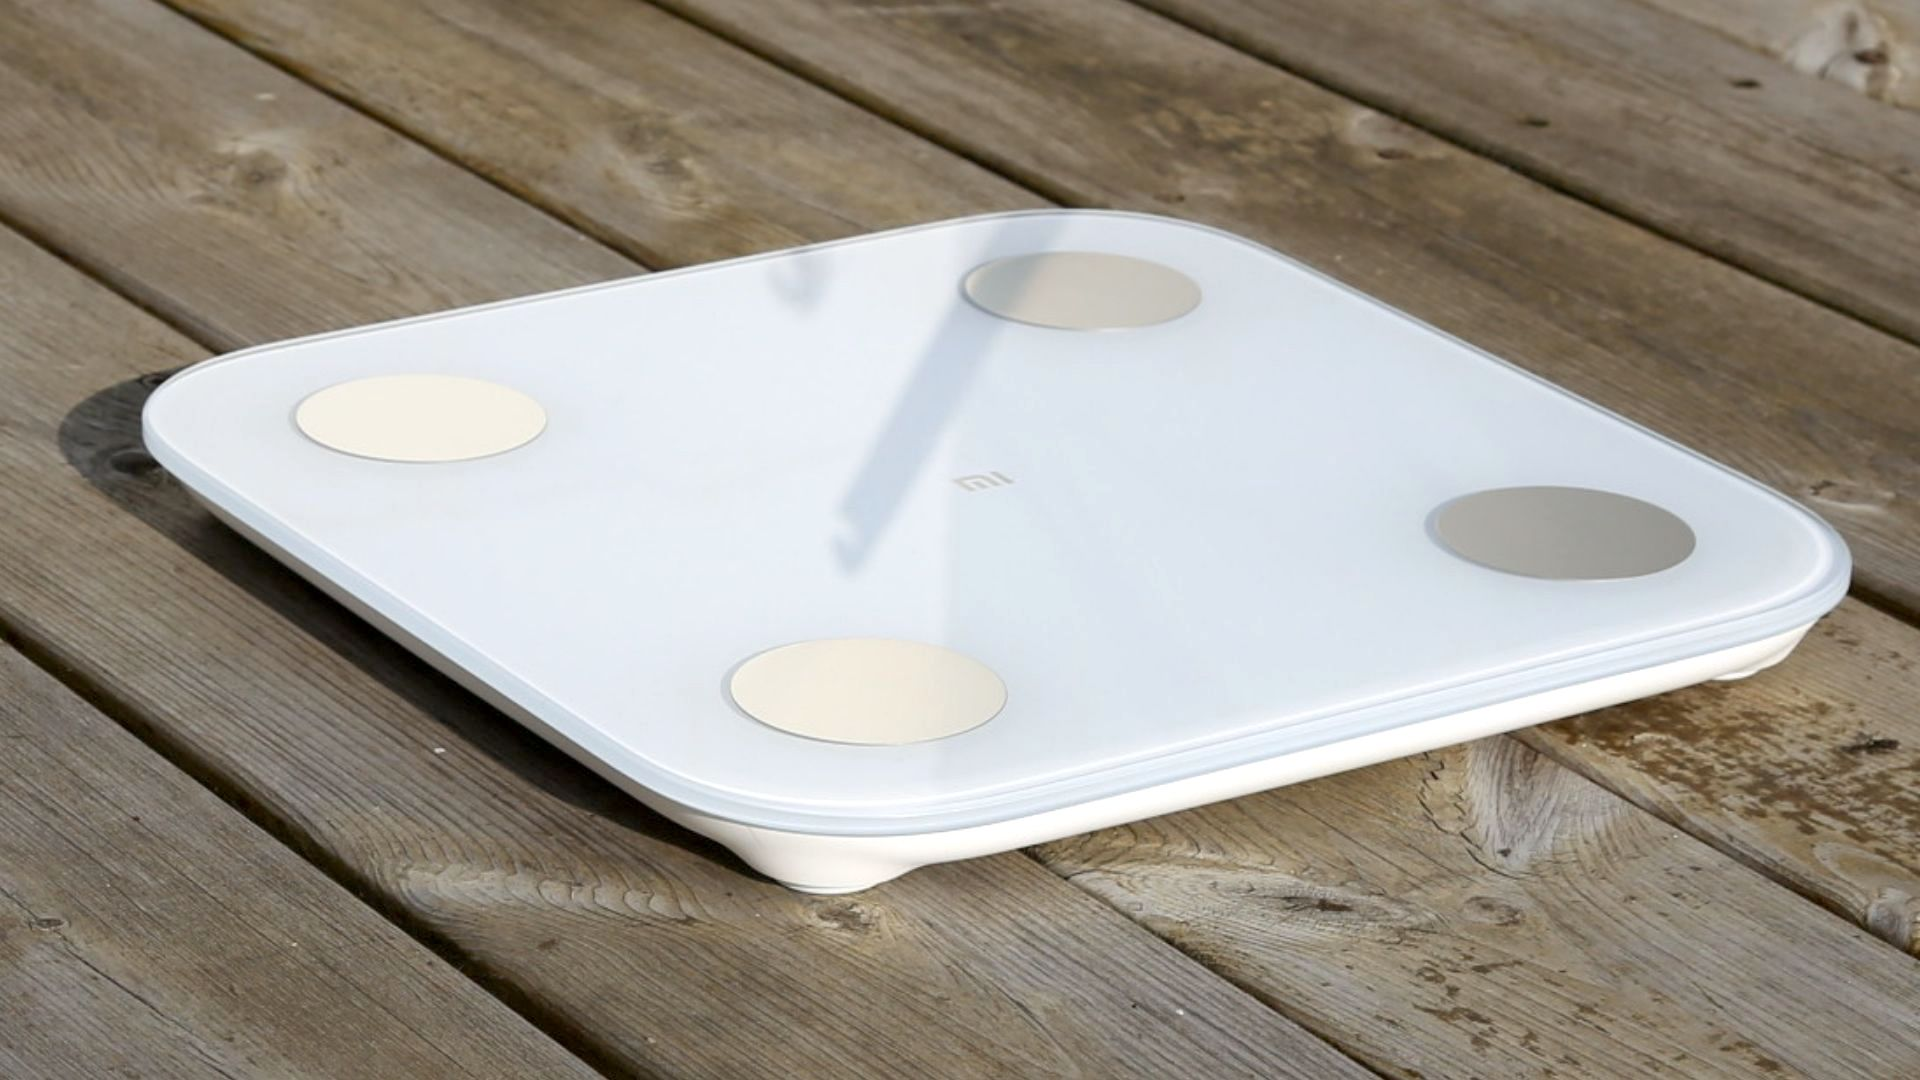 Xiaomi Mi Body Composition Scale 2 on a wooden floor